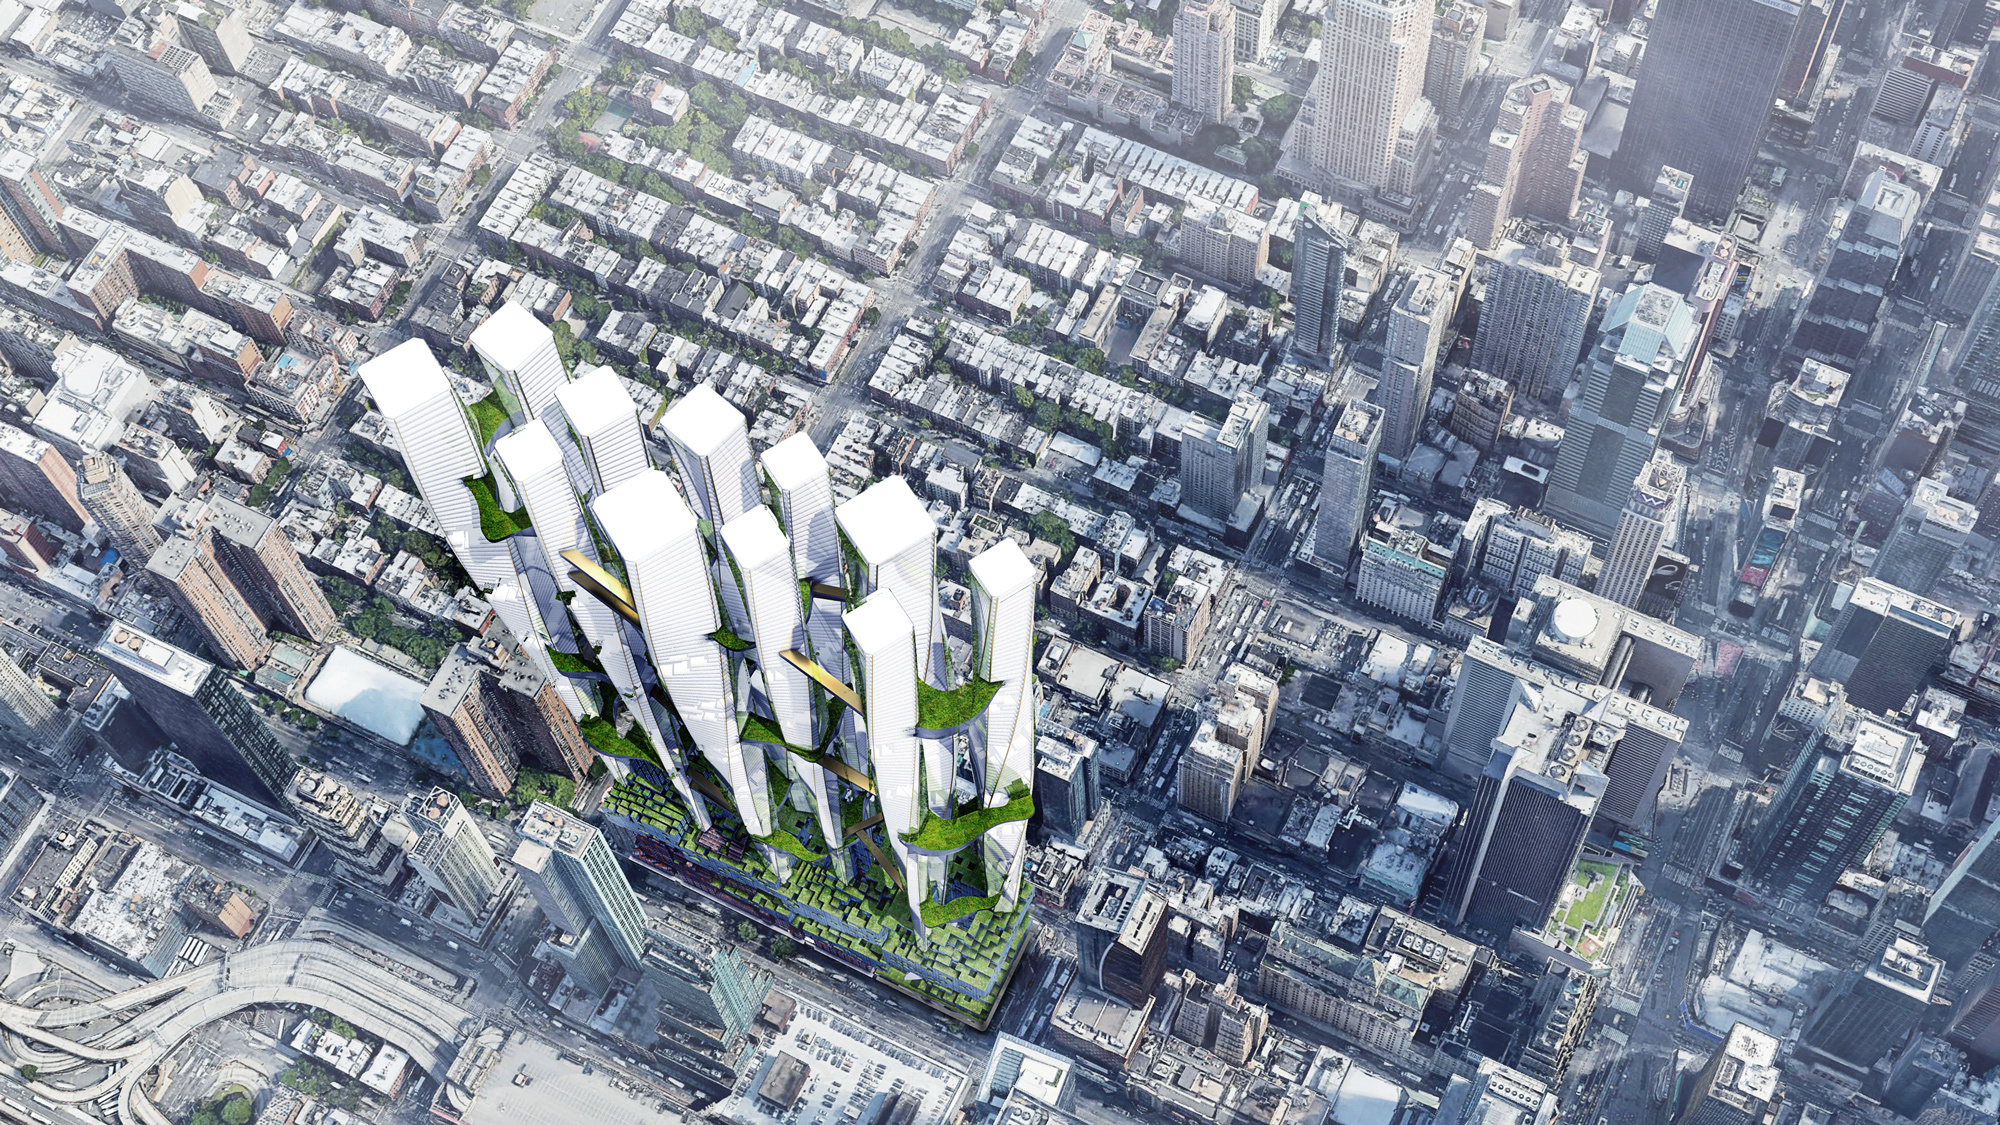 aerial view citycape tall buildings render